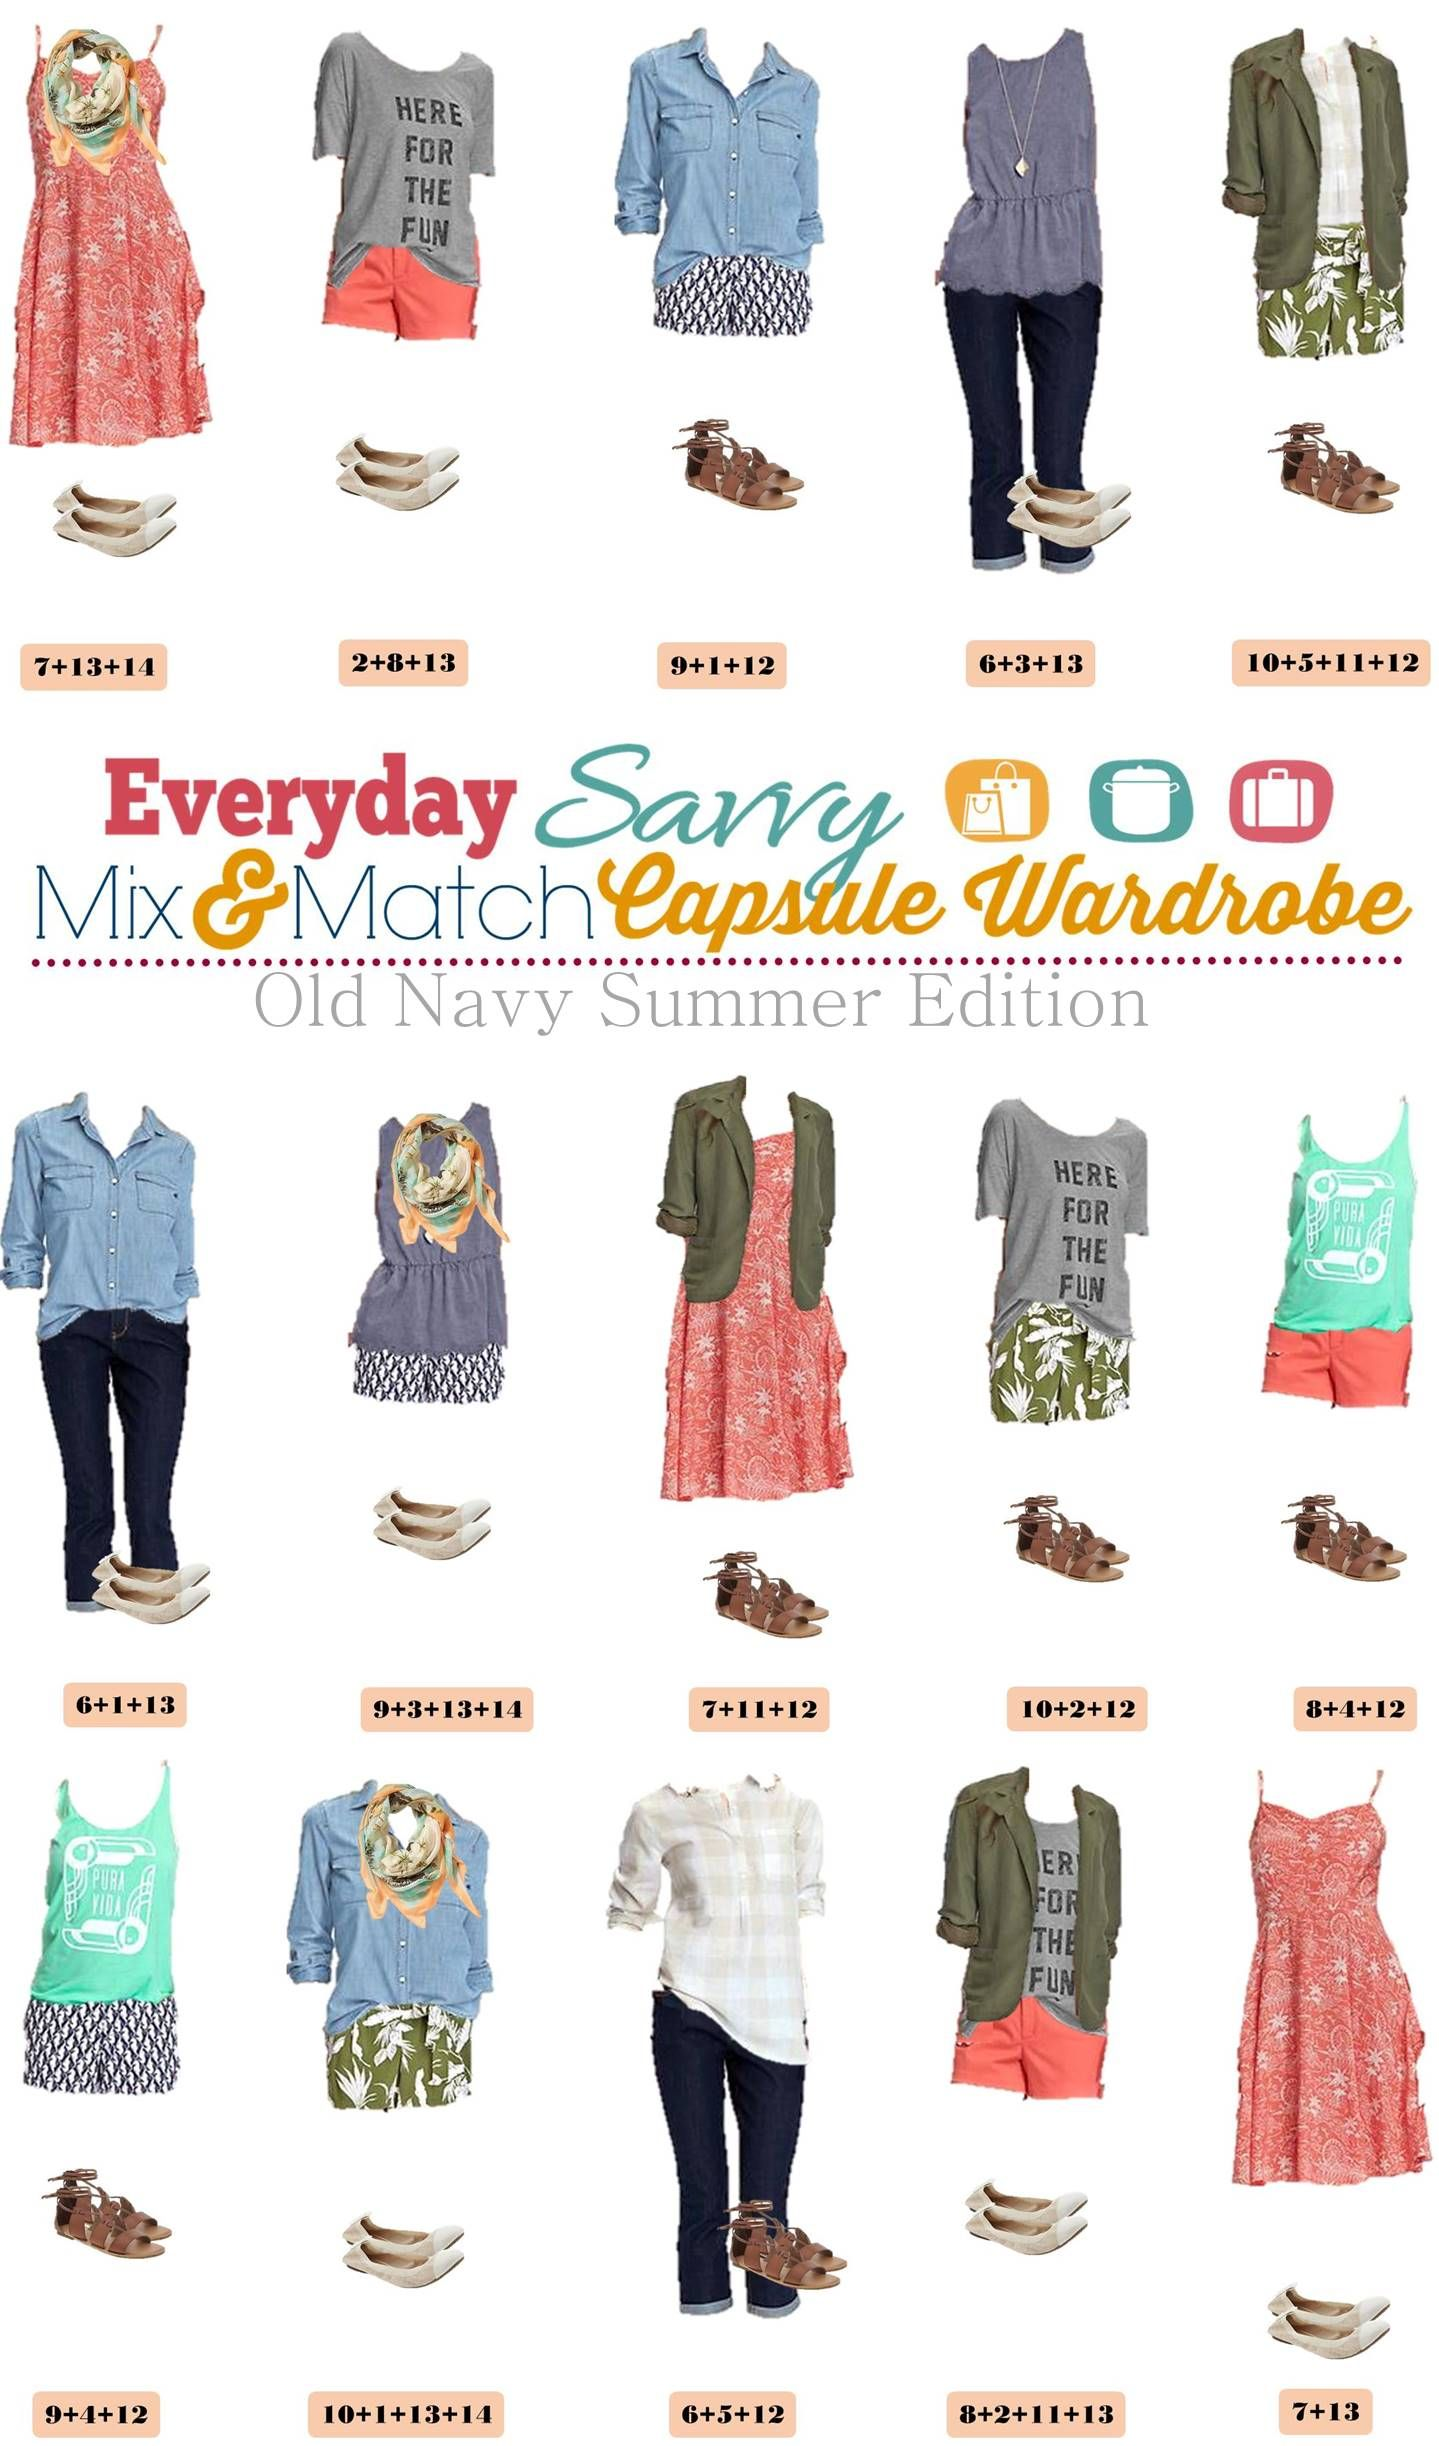 Old Navy Summer Capsule Wardrobe